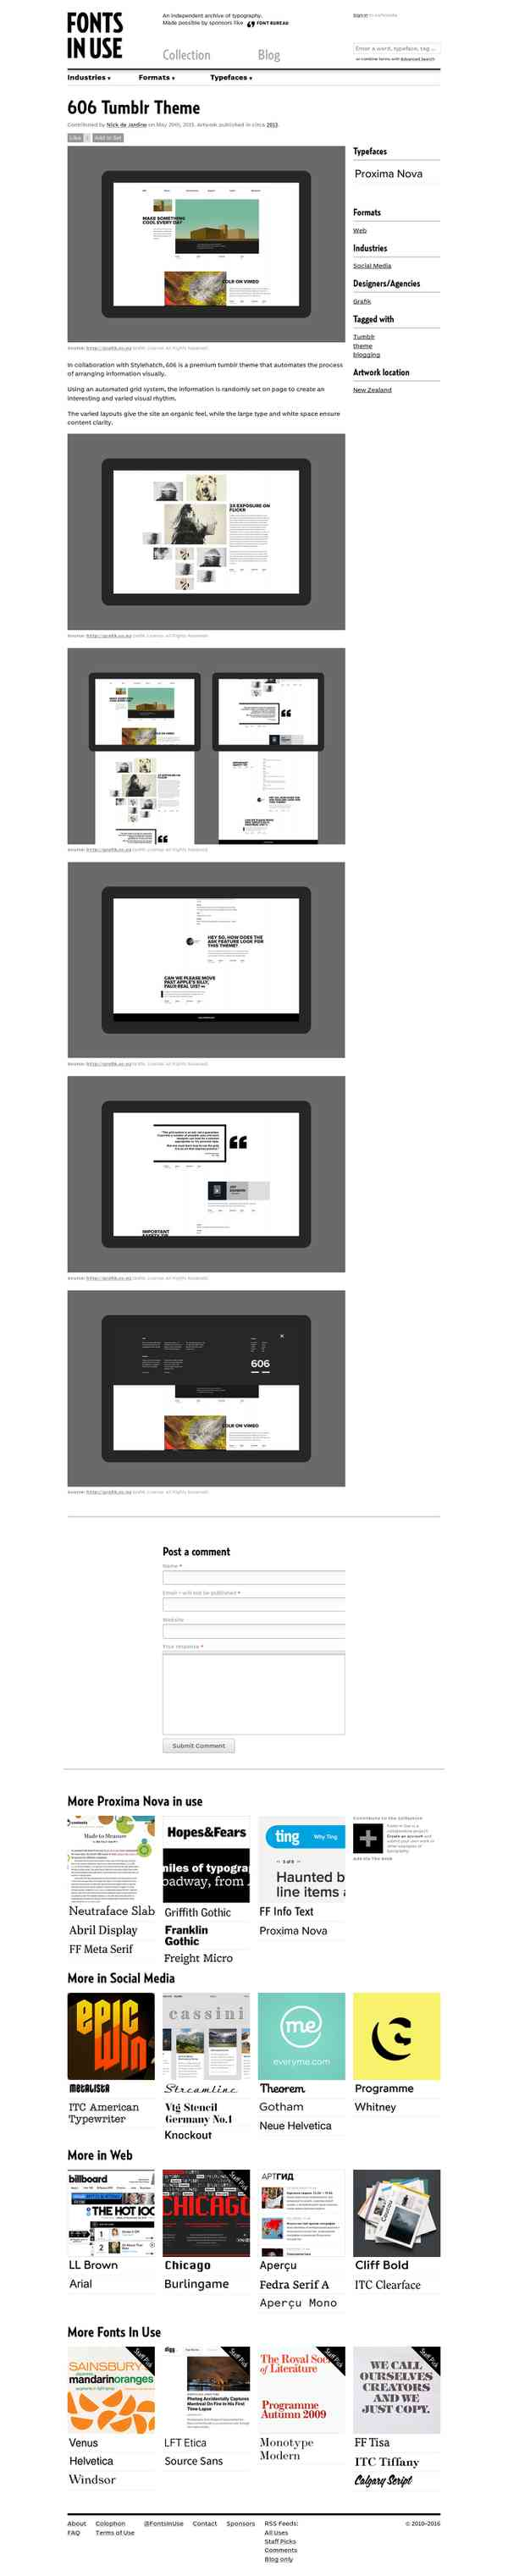 606 Tumblr Theme - Fonts In Use